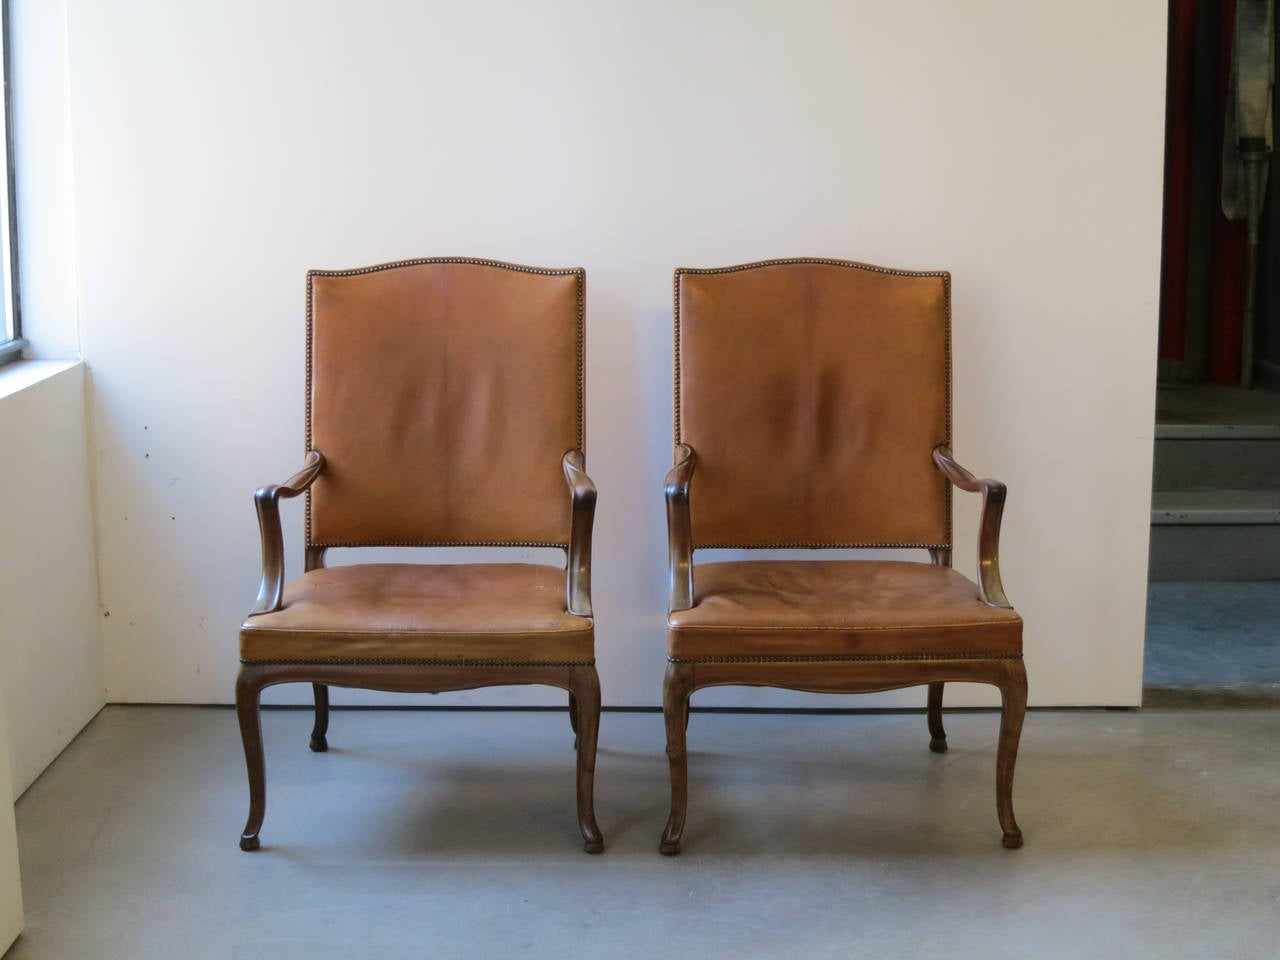 Frits Henningsen Four Large 1930s Armchairs in Danish Rococo Style For Sale 1